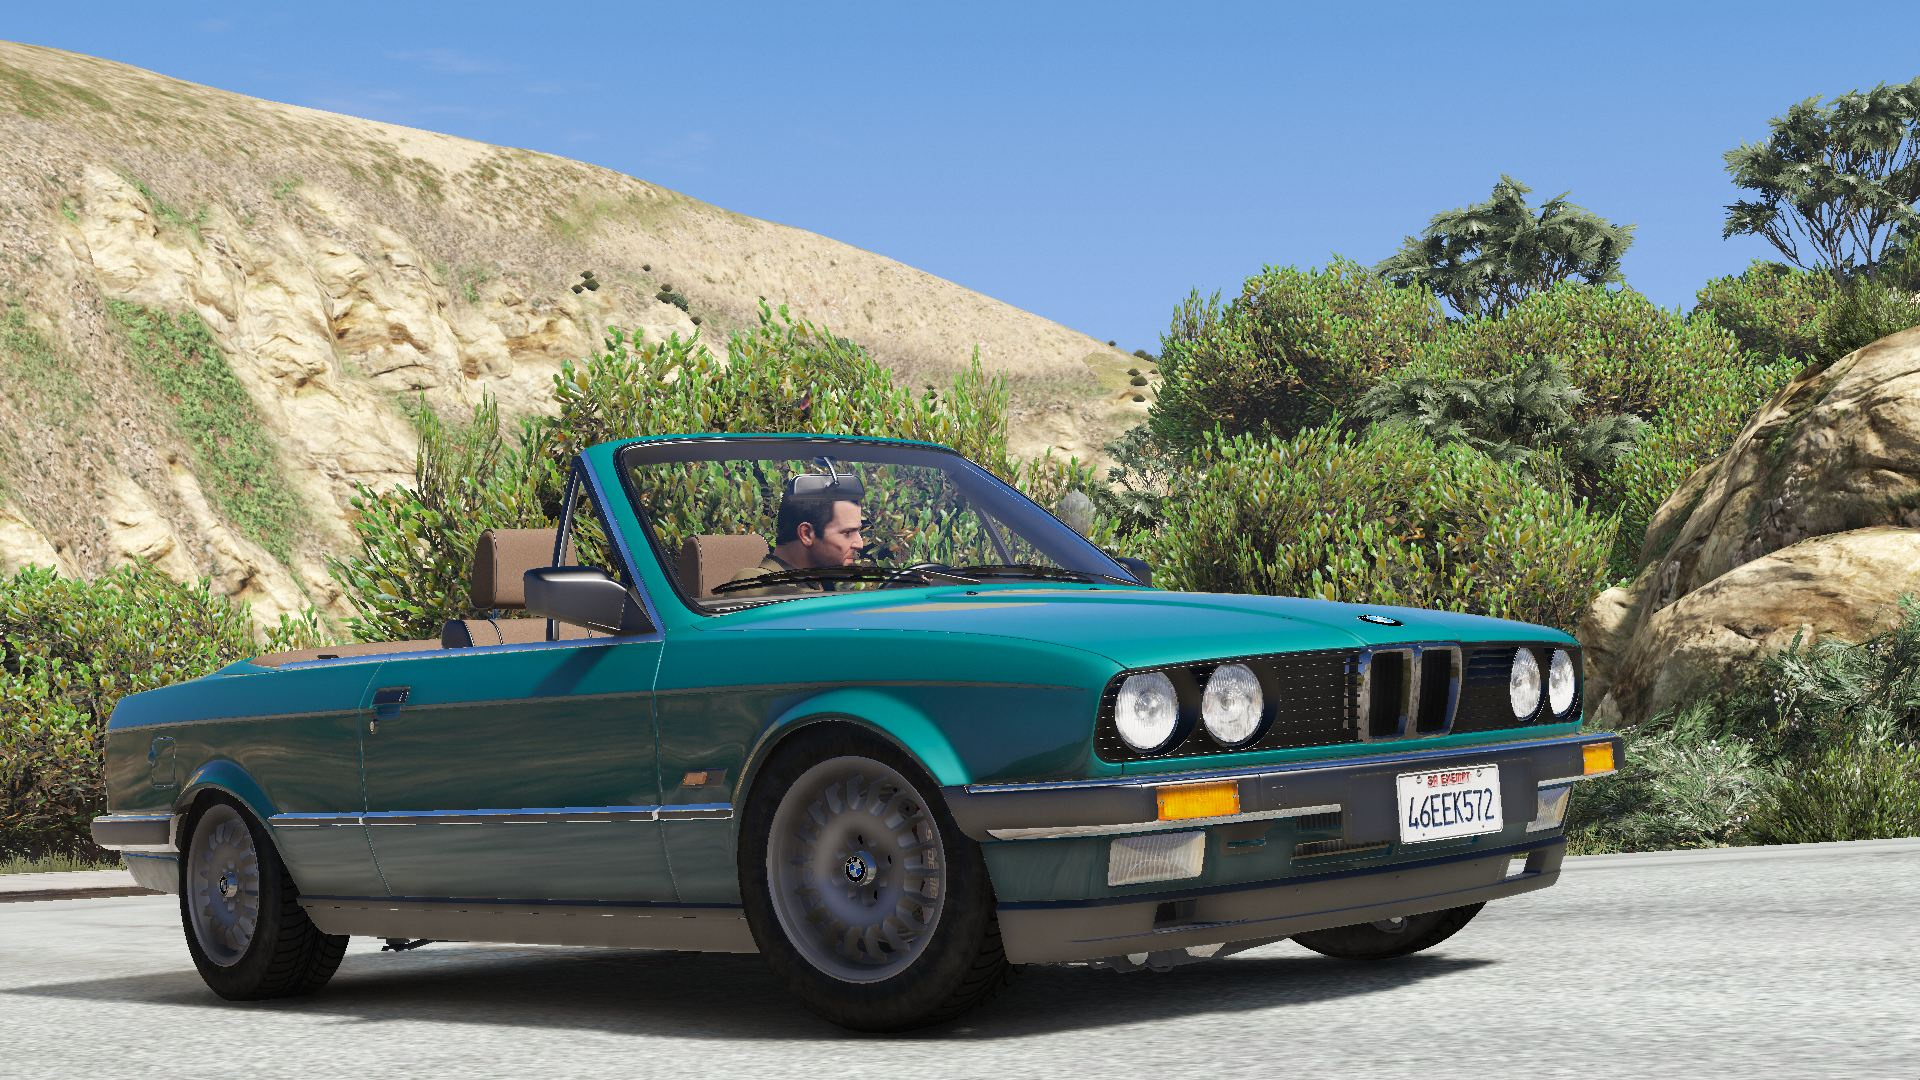 Bmw E30 318i Cabriolet Phase 1 And 2 Pack Add On Tuning Gta5 Mods Com